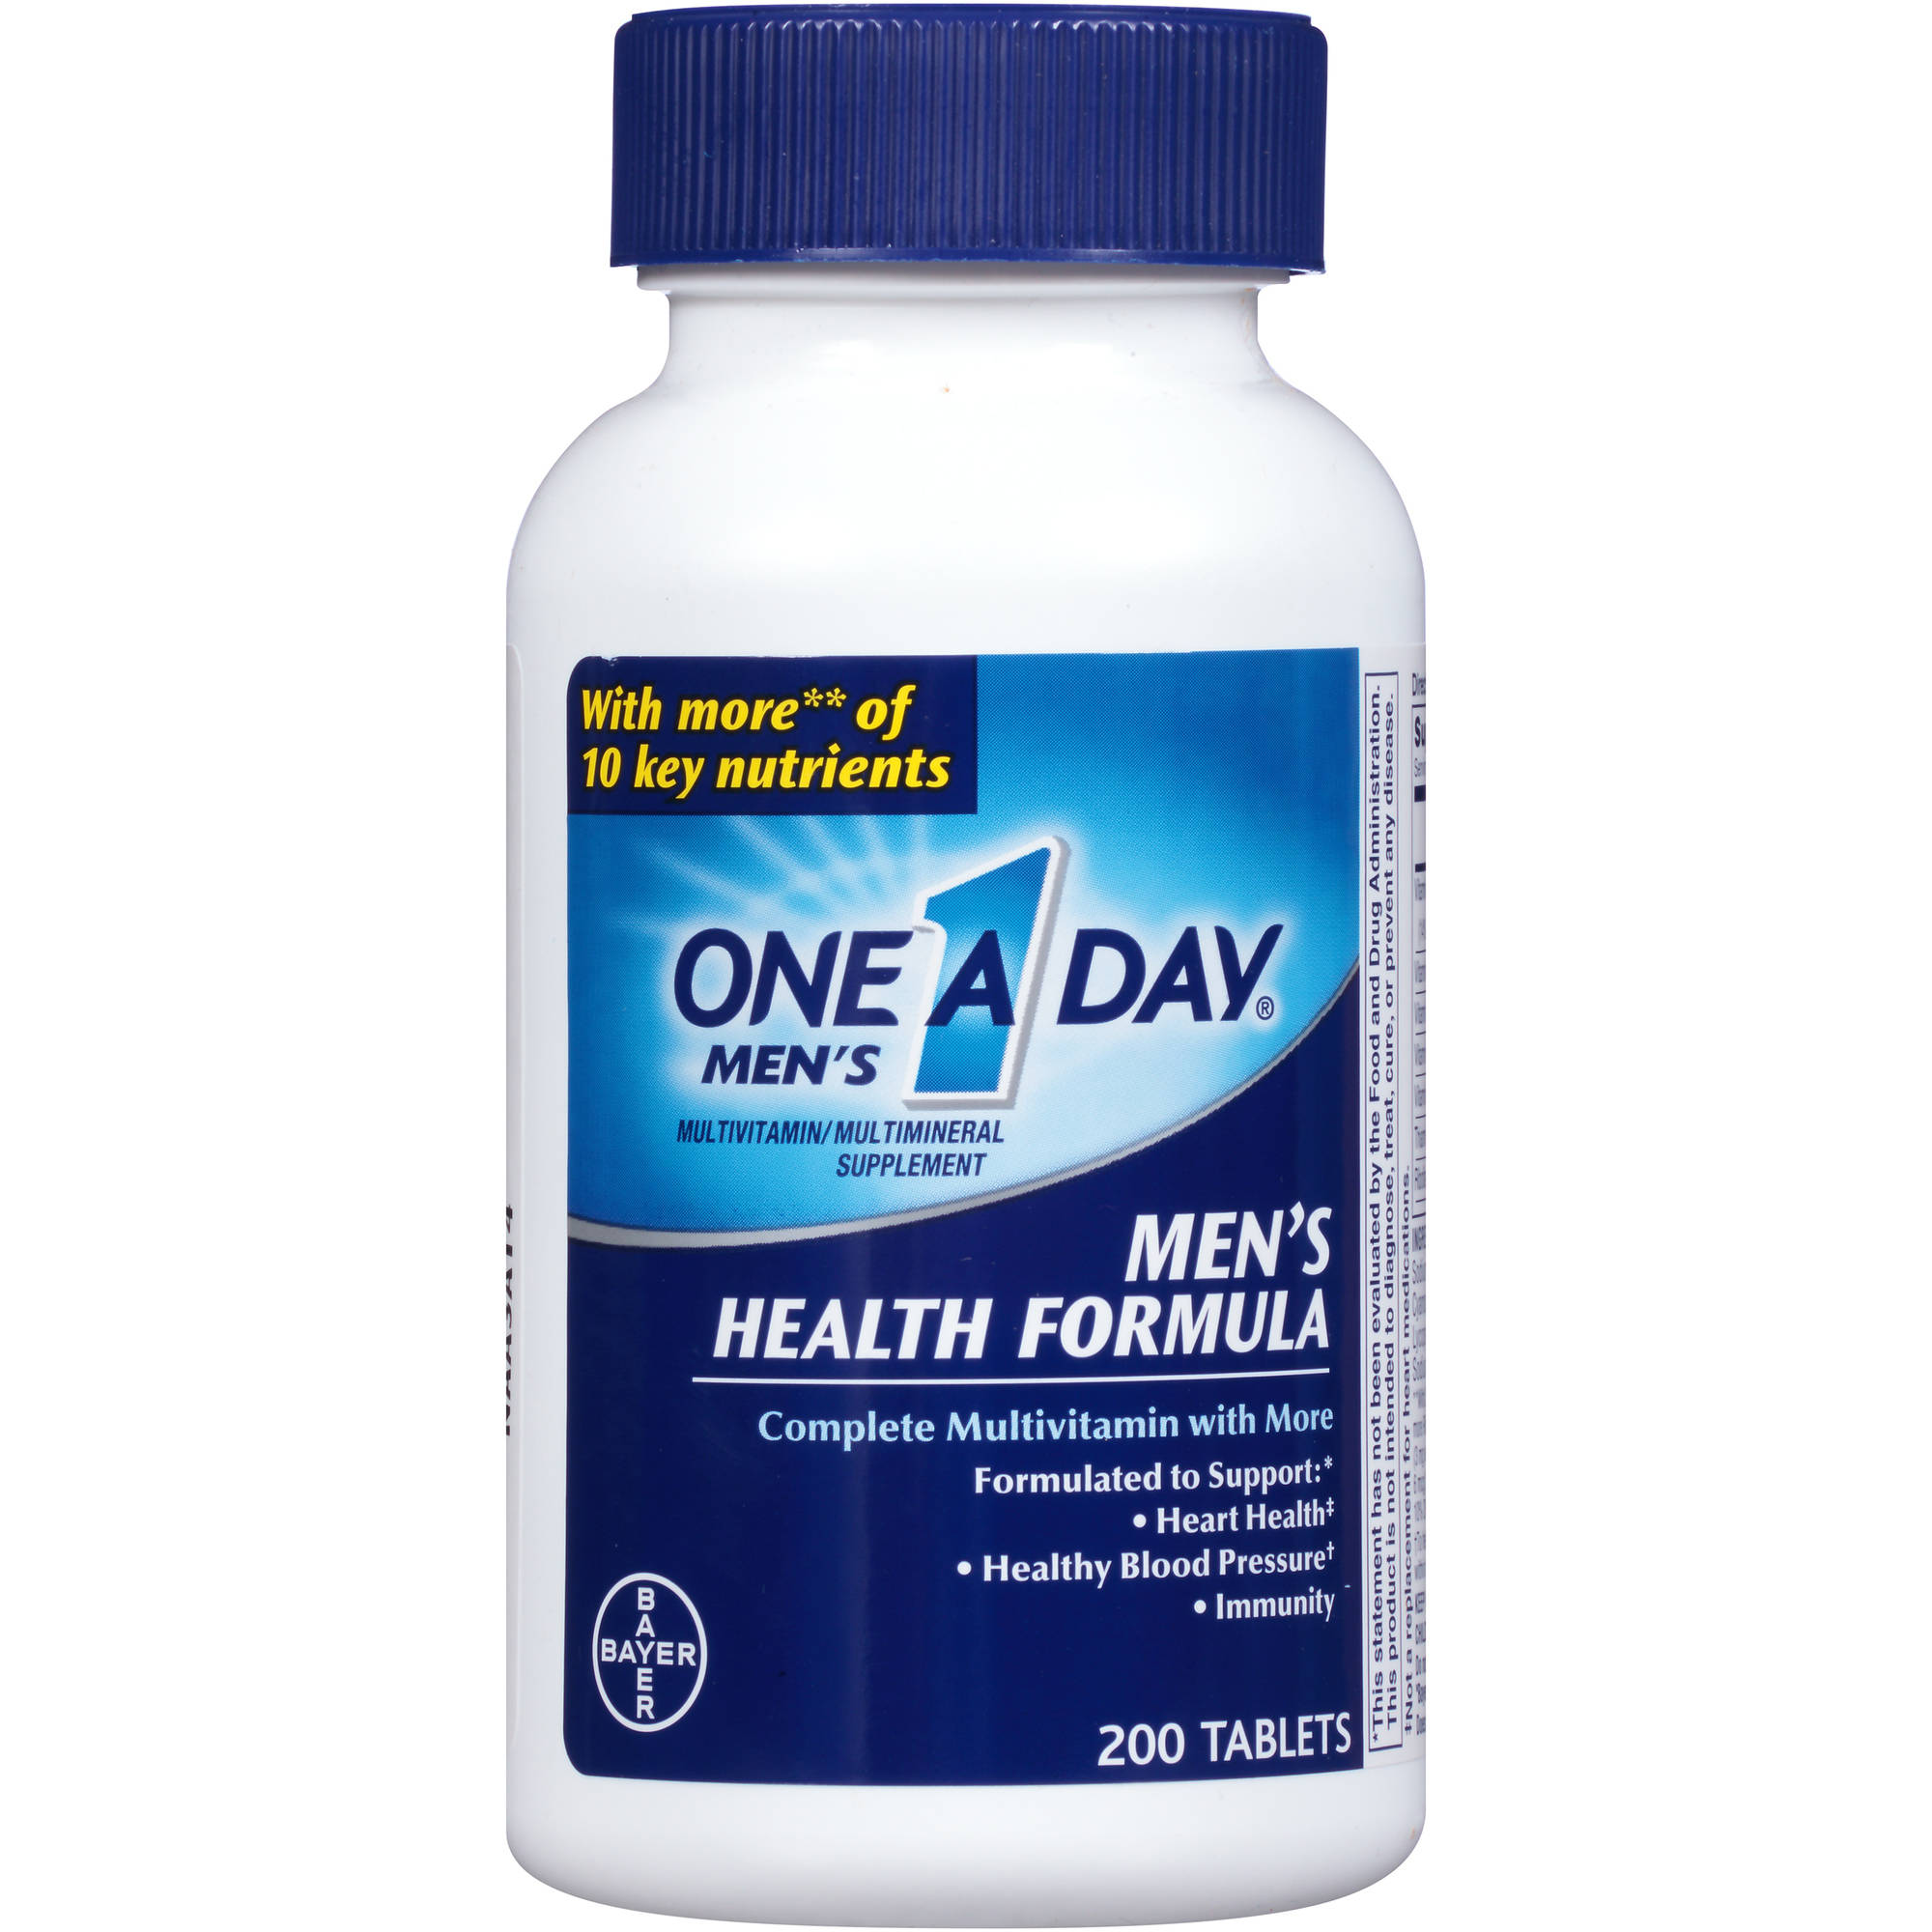 Vitamin_One_Day_For_Men_(one_a_day_men)